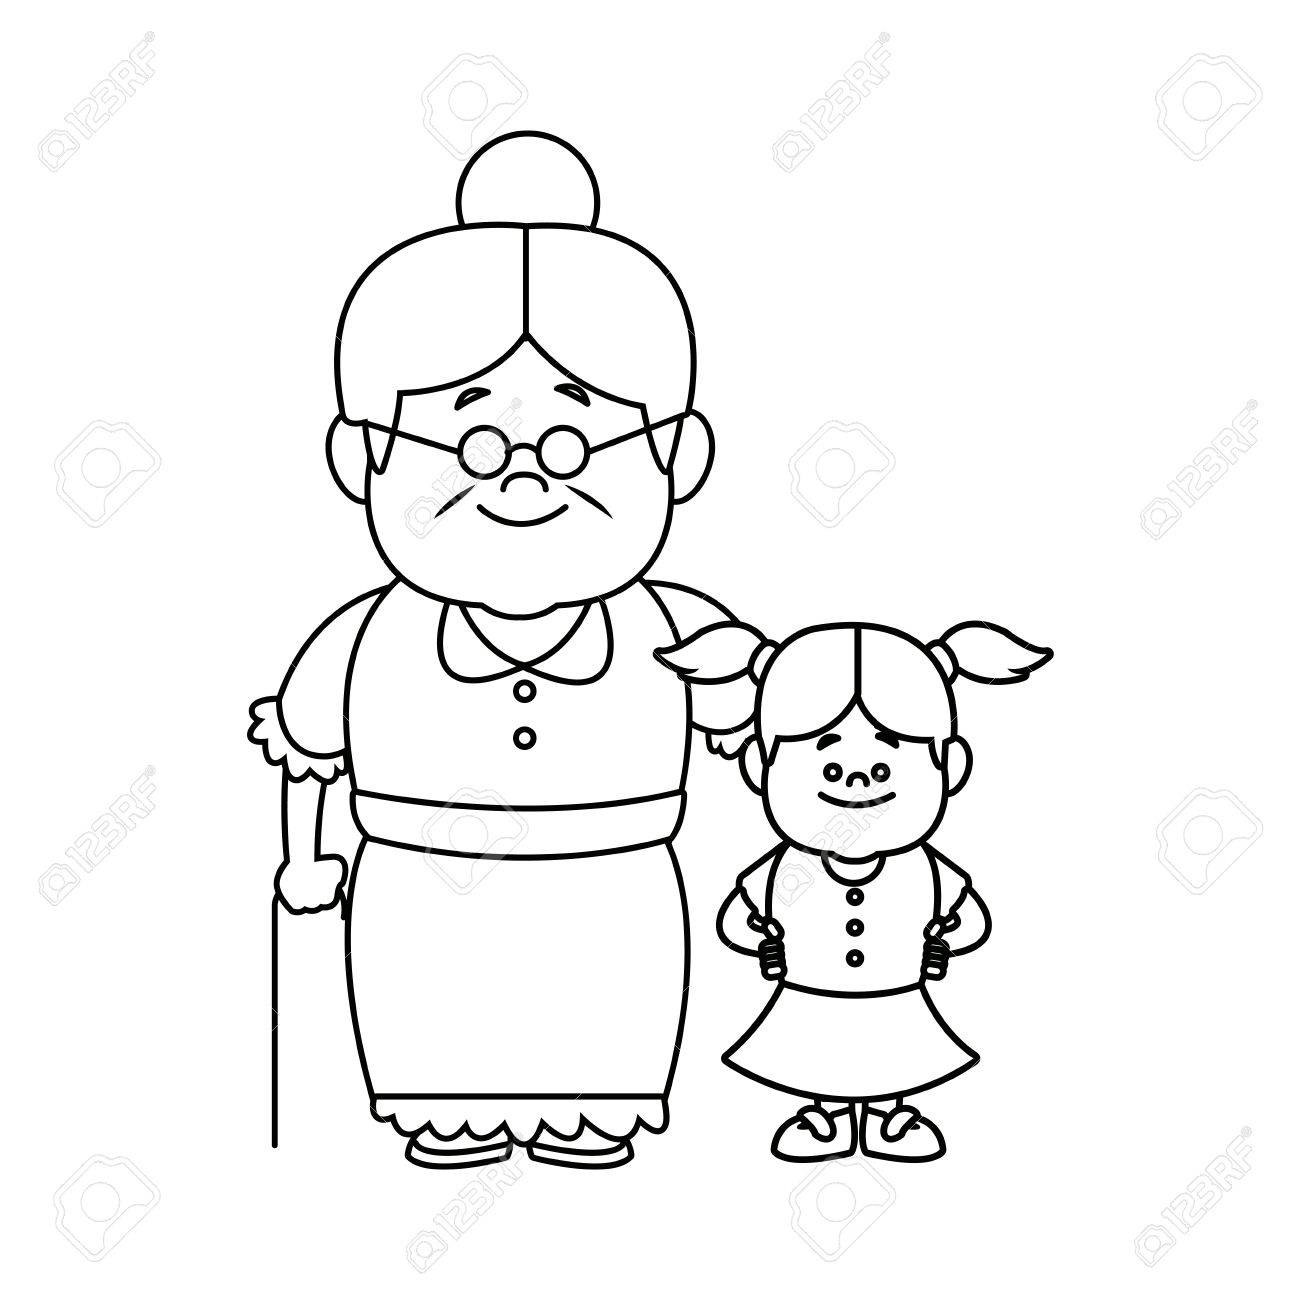 little girl and grandmother together family vector illustration - 82261996